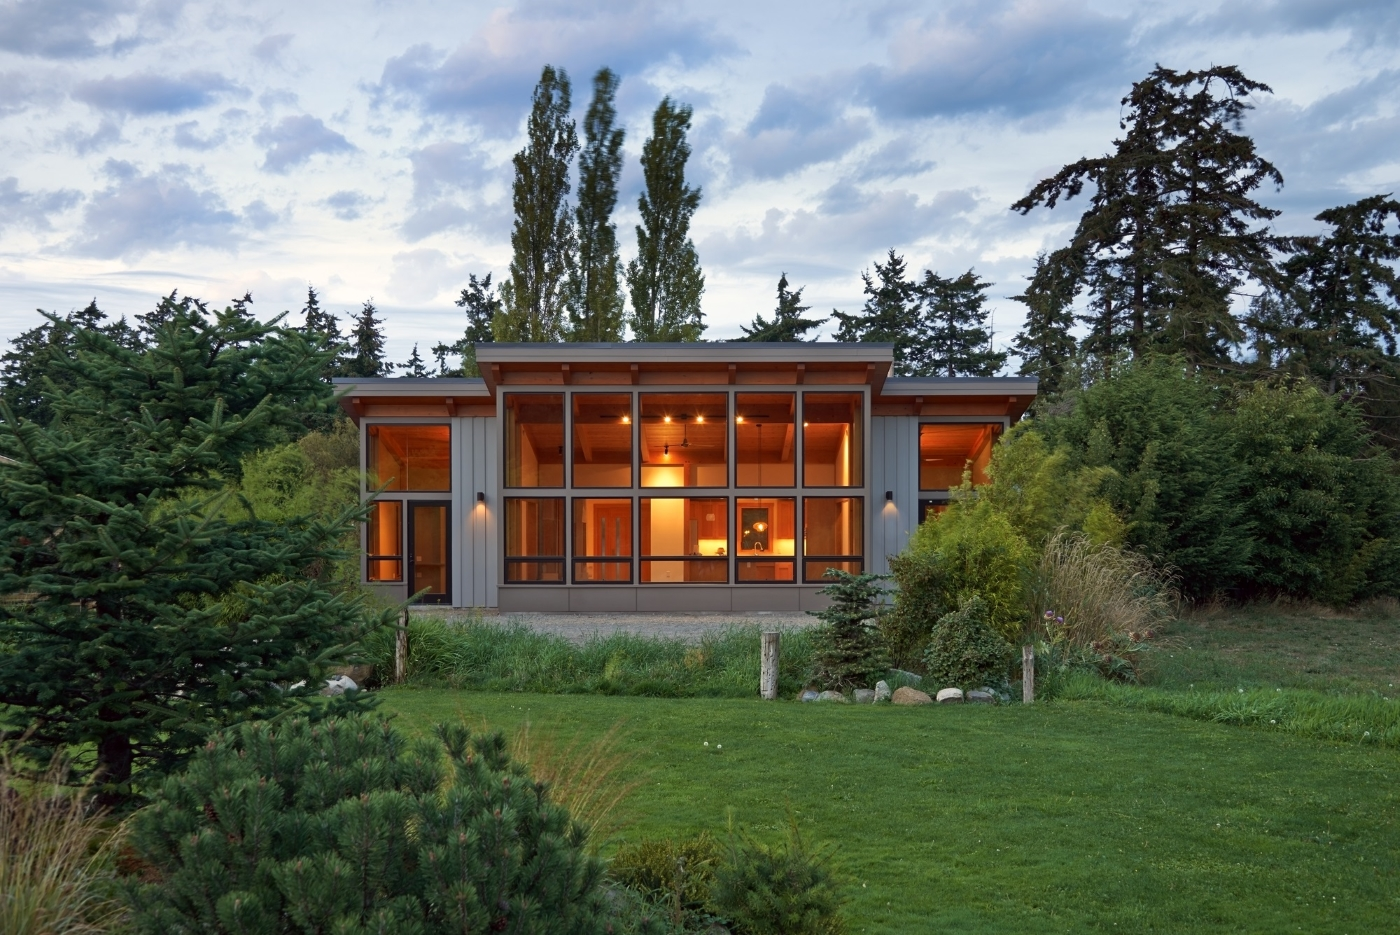 What Is A Prefab Home seattle djc local business news and data - architecture